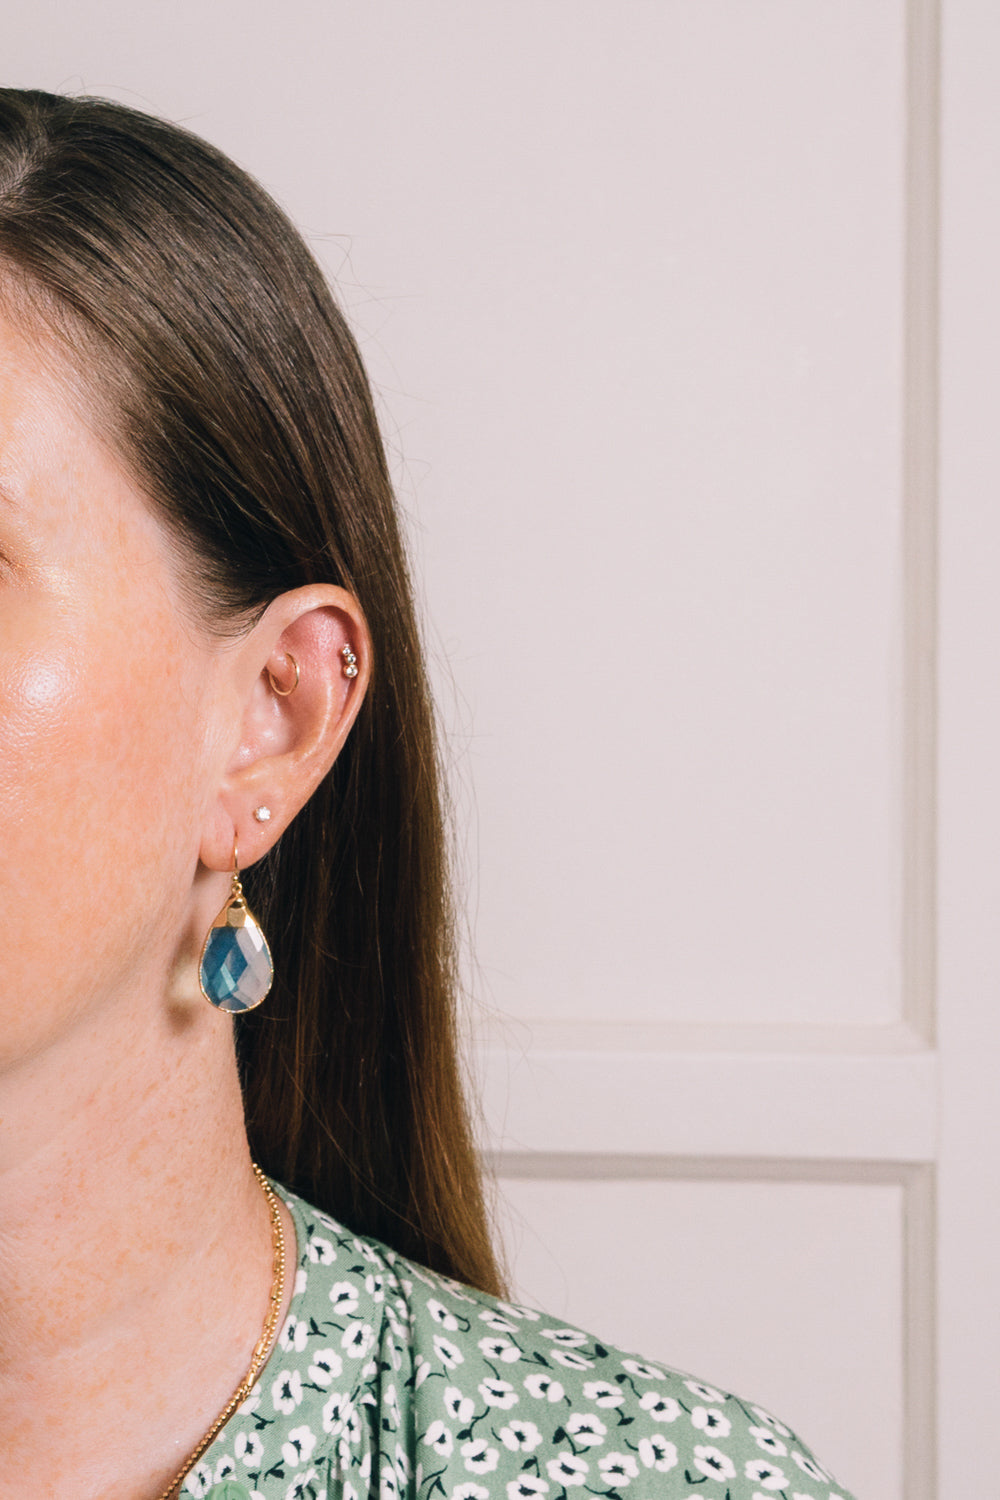 lt blue quartz teardrop earrings on model